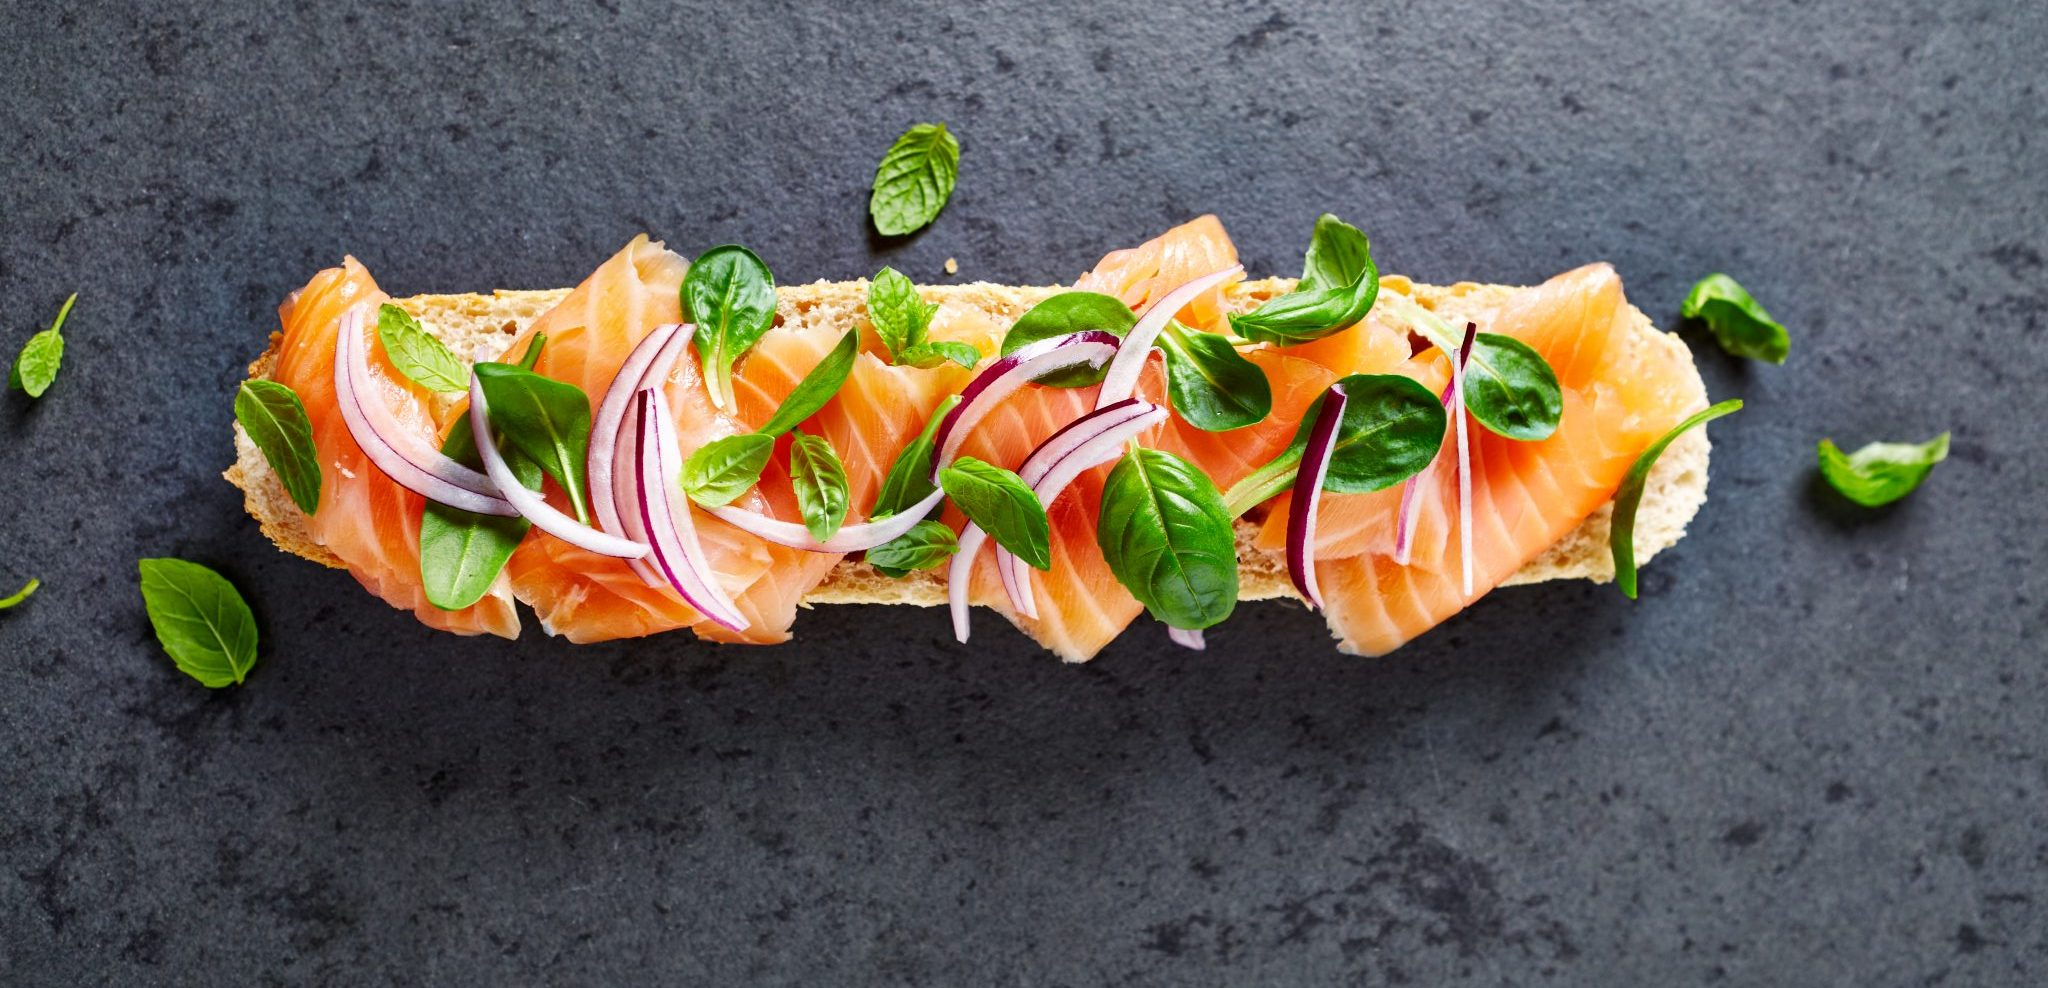 The Big Fish: Calories and Health Benefits of Eating Lox